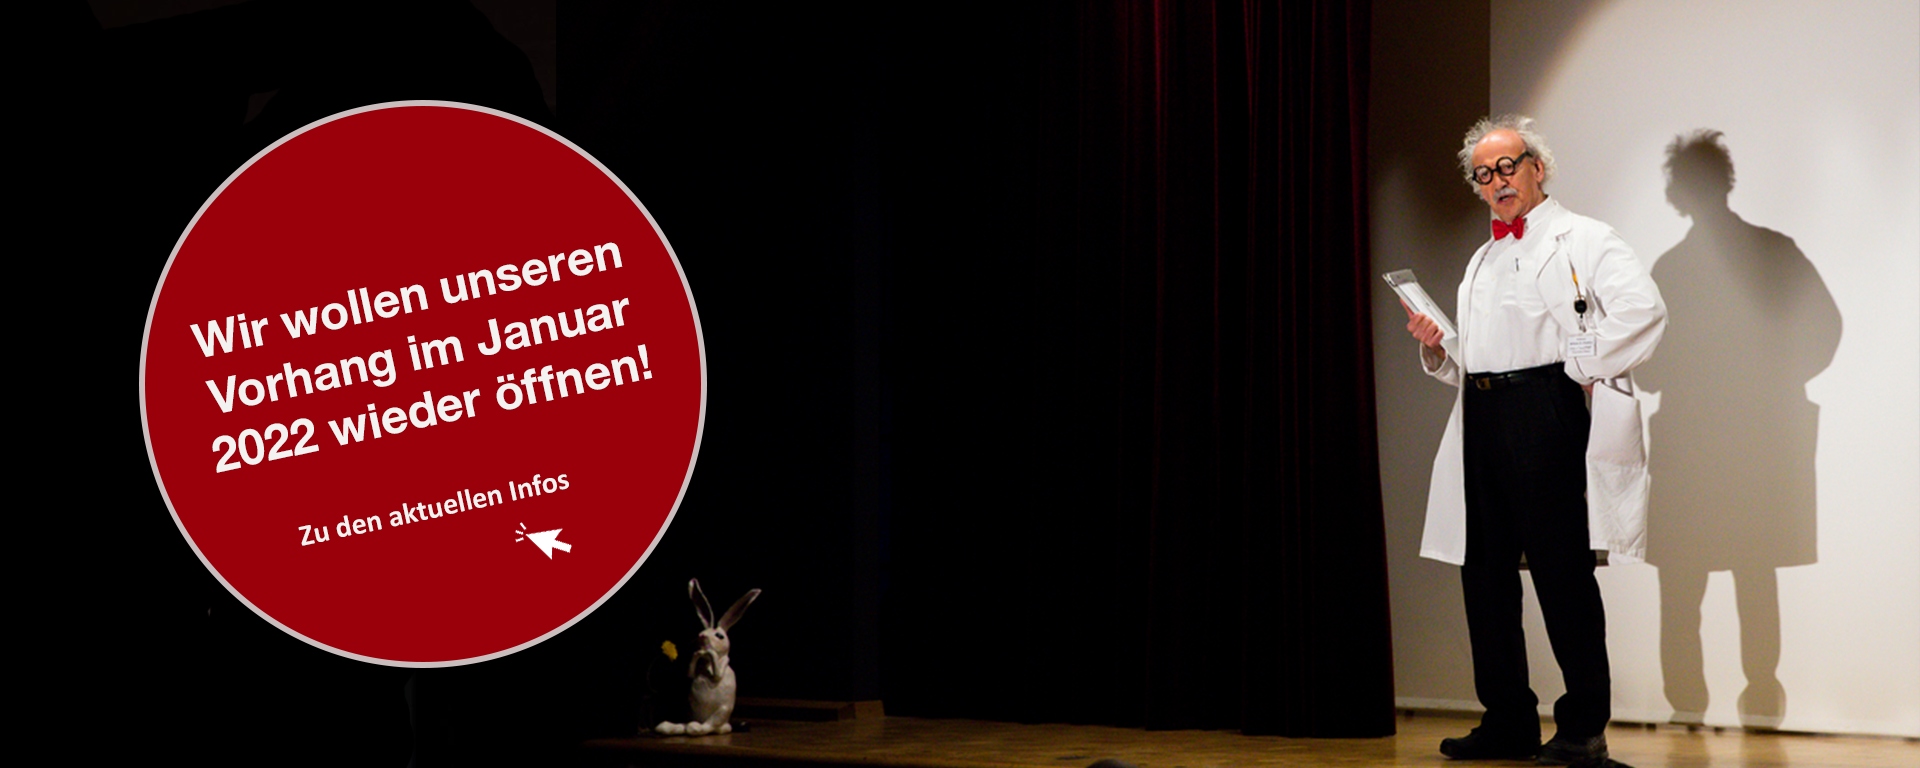 """Vorhang uff, 2022 isch in Hobel vilicht wider Theater!"""